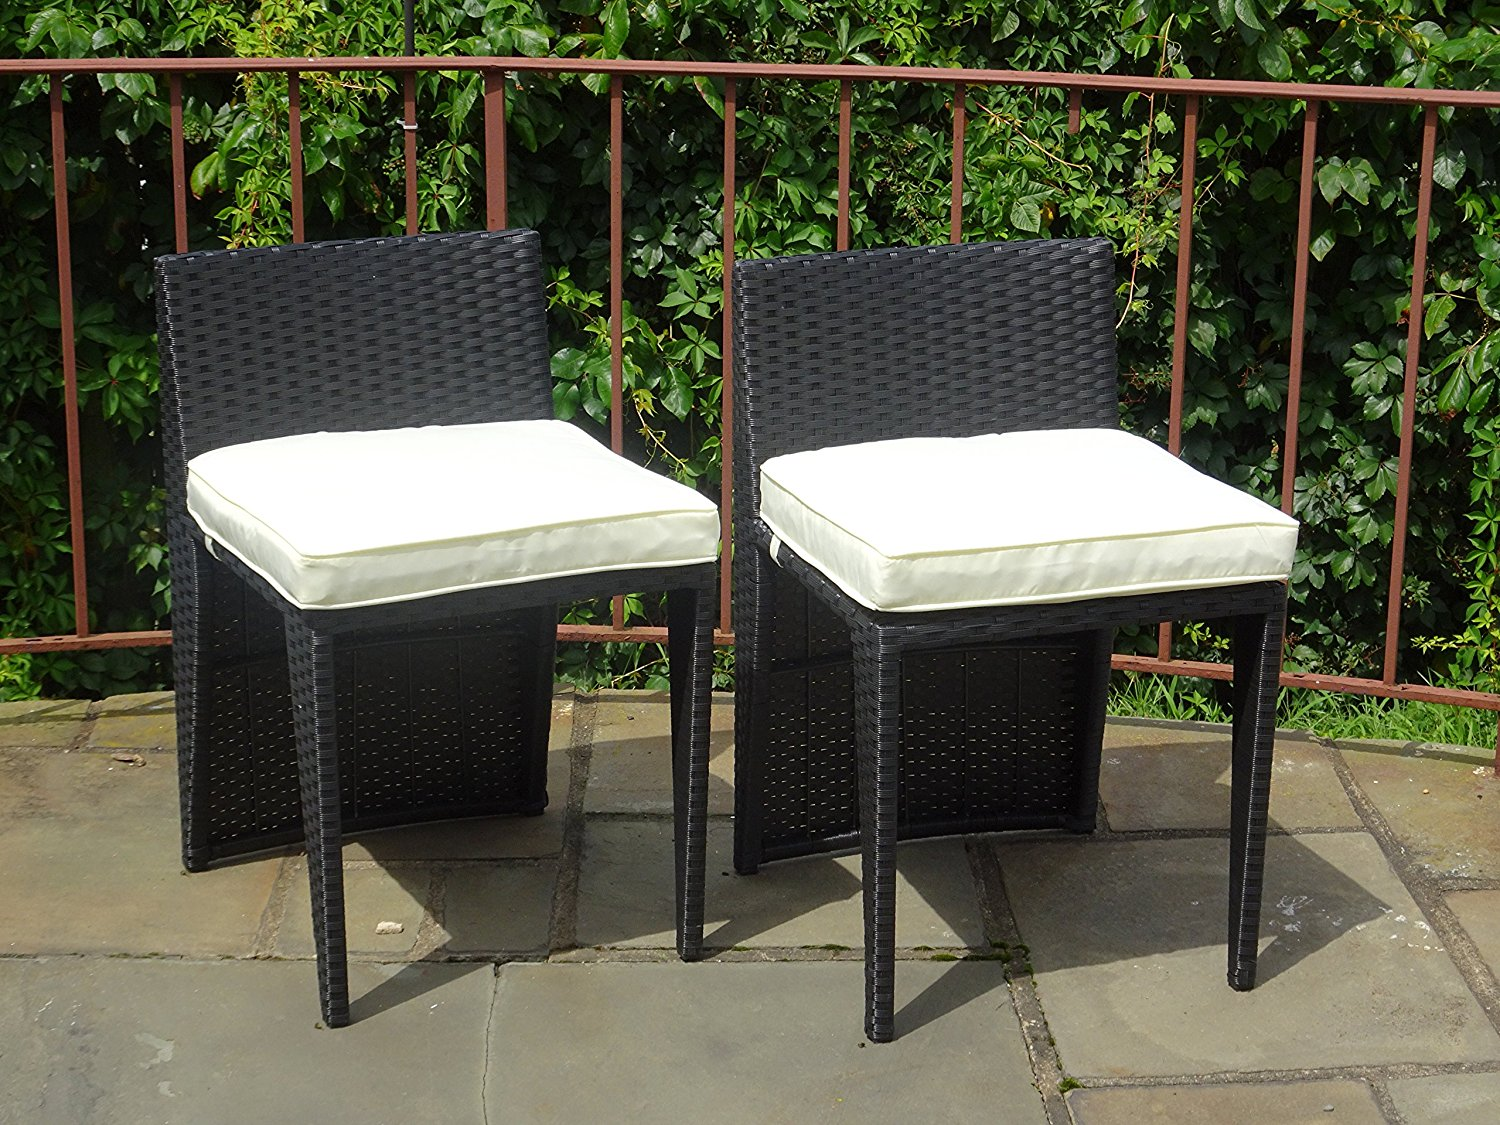 Backyard Chairs Cheap Backyard Chairs Find Backyard Chairs Deals On Line At